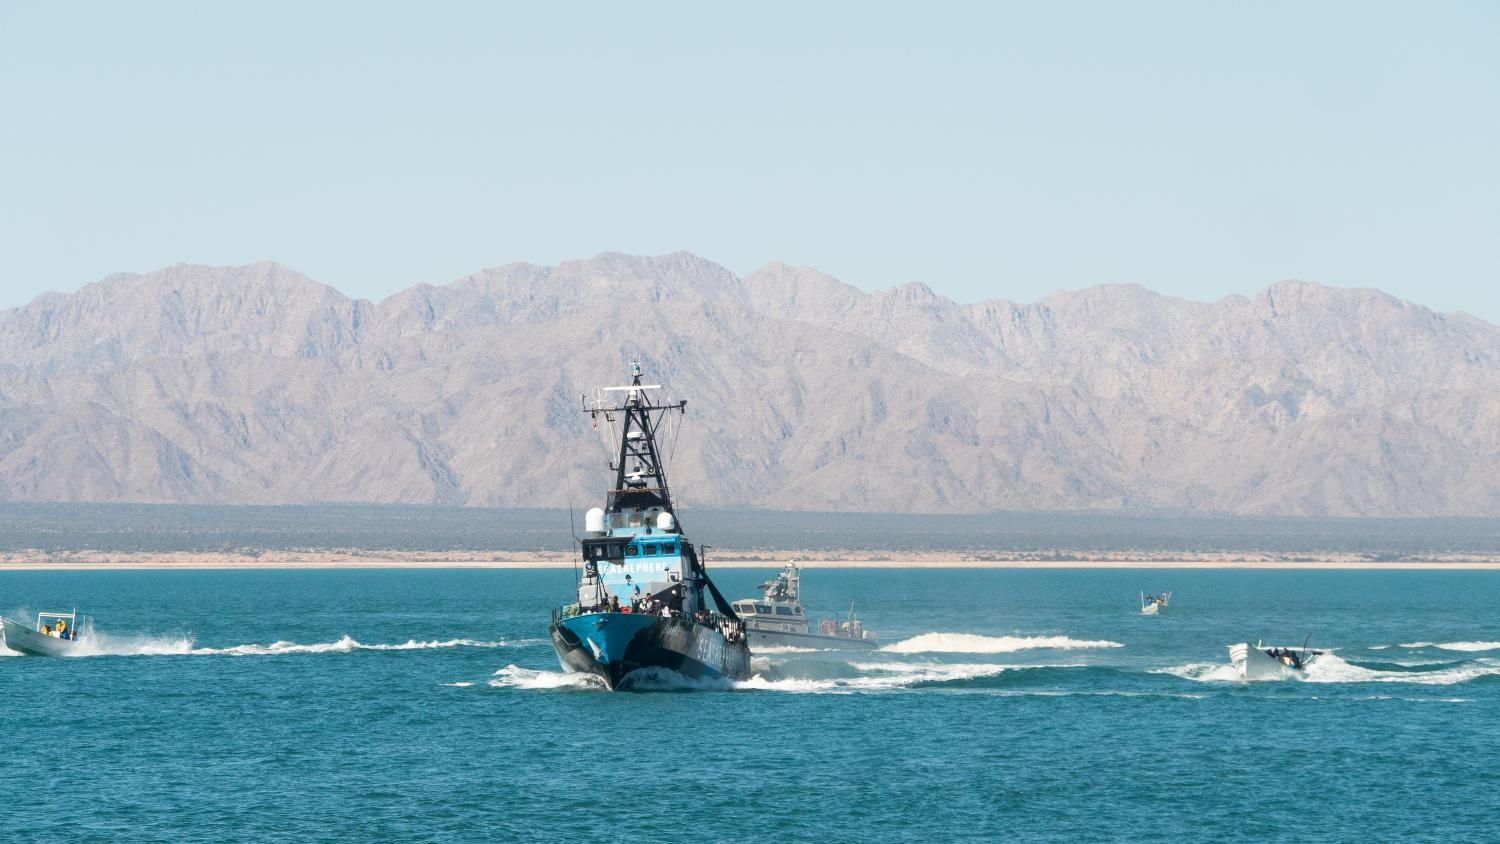 fishing boats surround Sea Shepherd ship